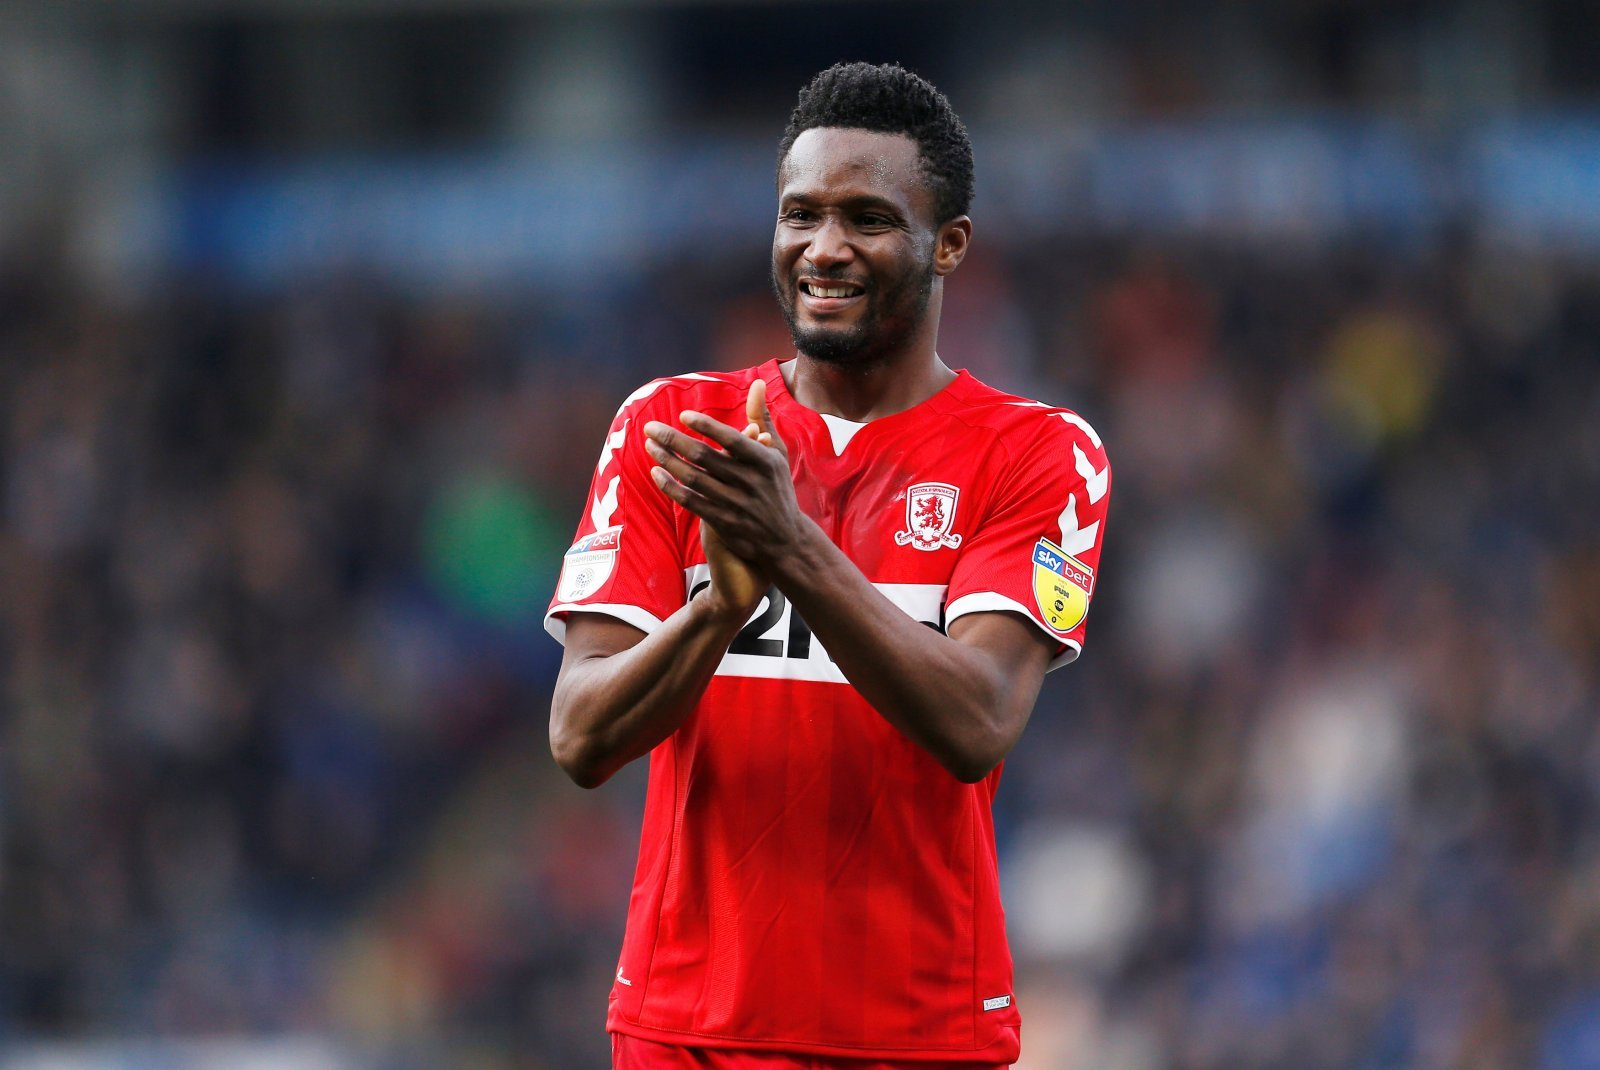 Middlesbrough fans on Twitter pine for a John Obi Mikel extension